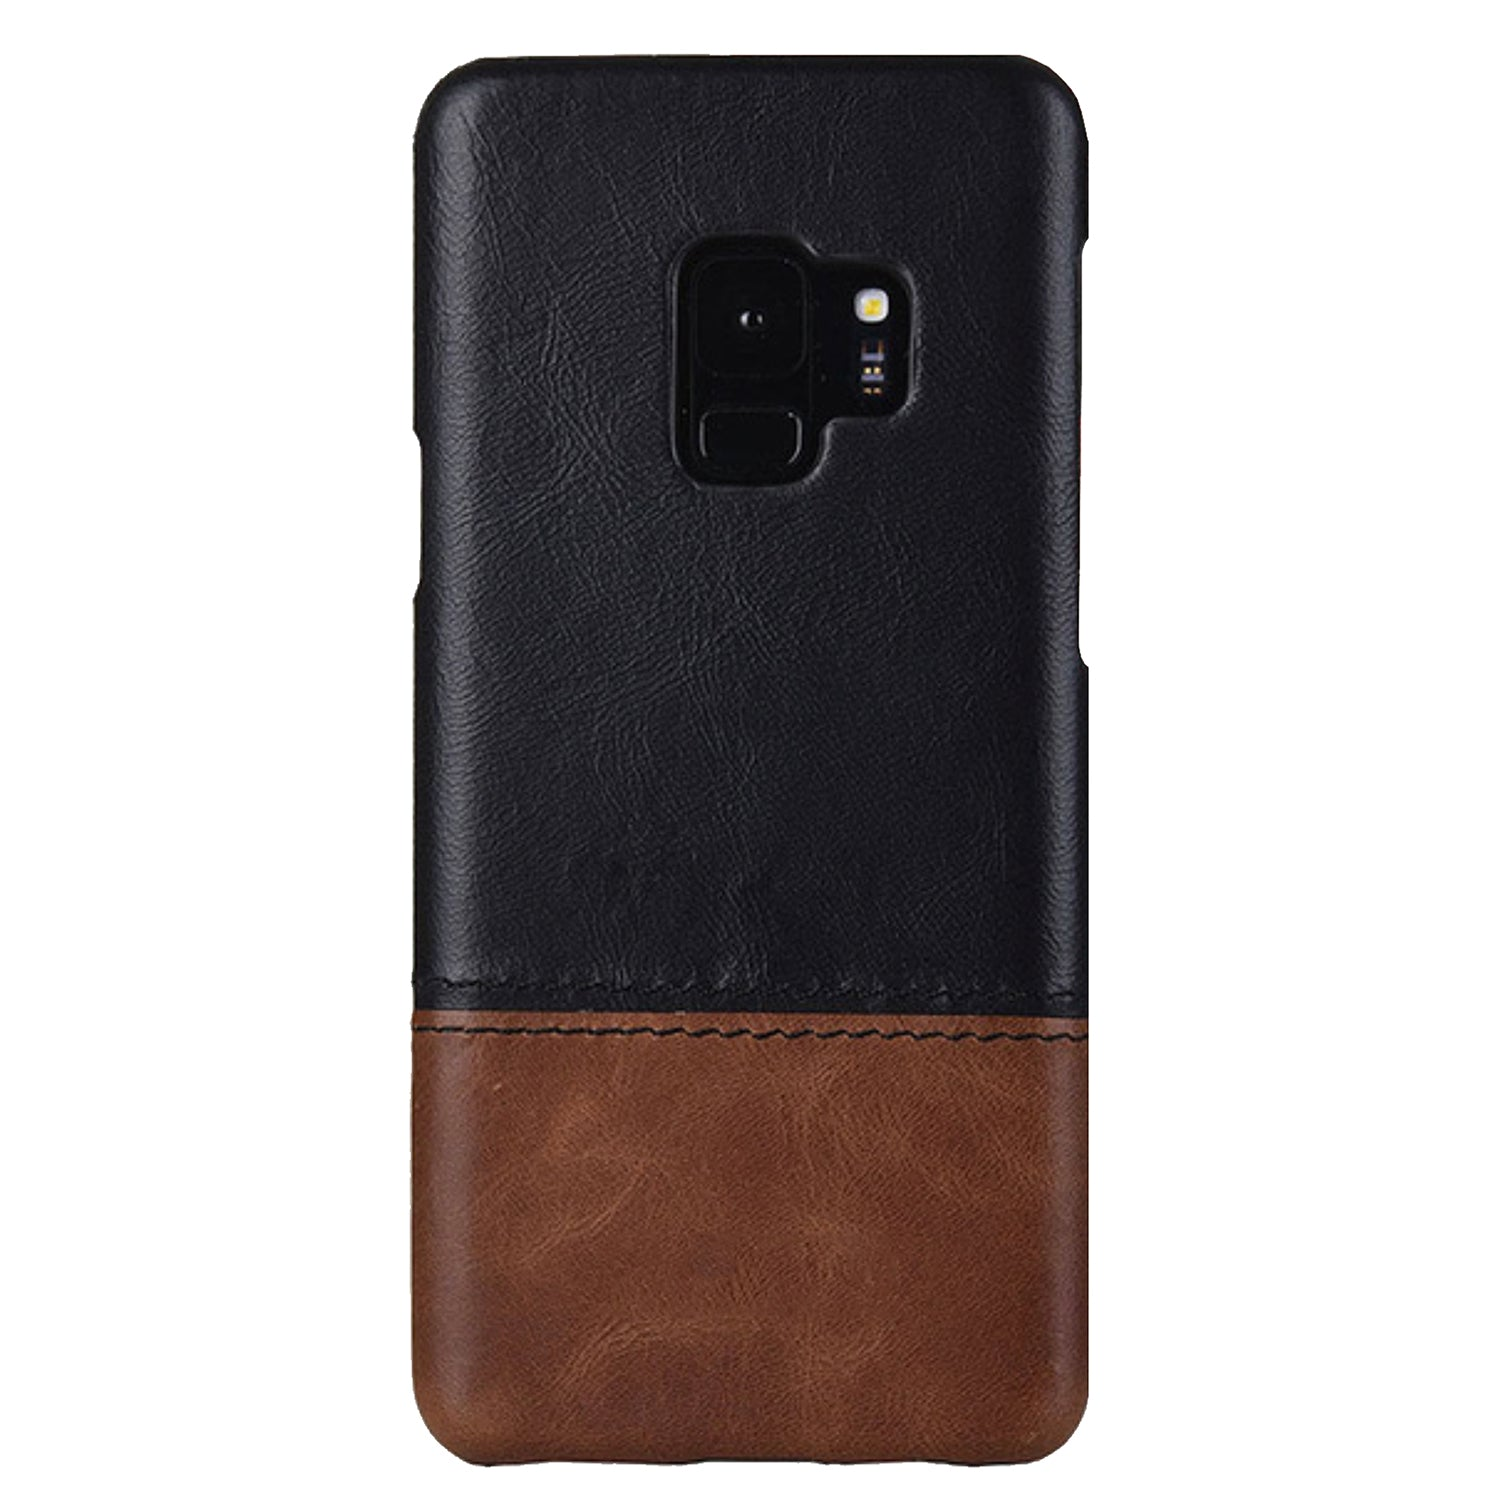 Genuine Leather Dual Color Hand Stitched Premium Protective Case Cover for Samsung Galaxy S9 - Black , Brown - Mobizang